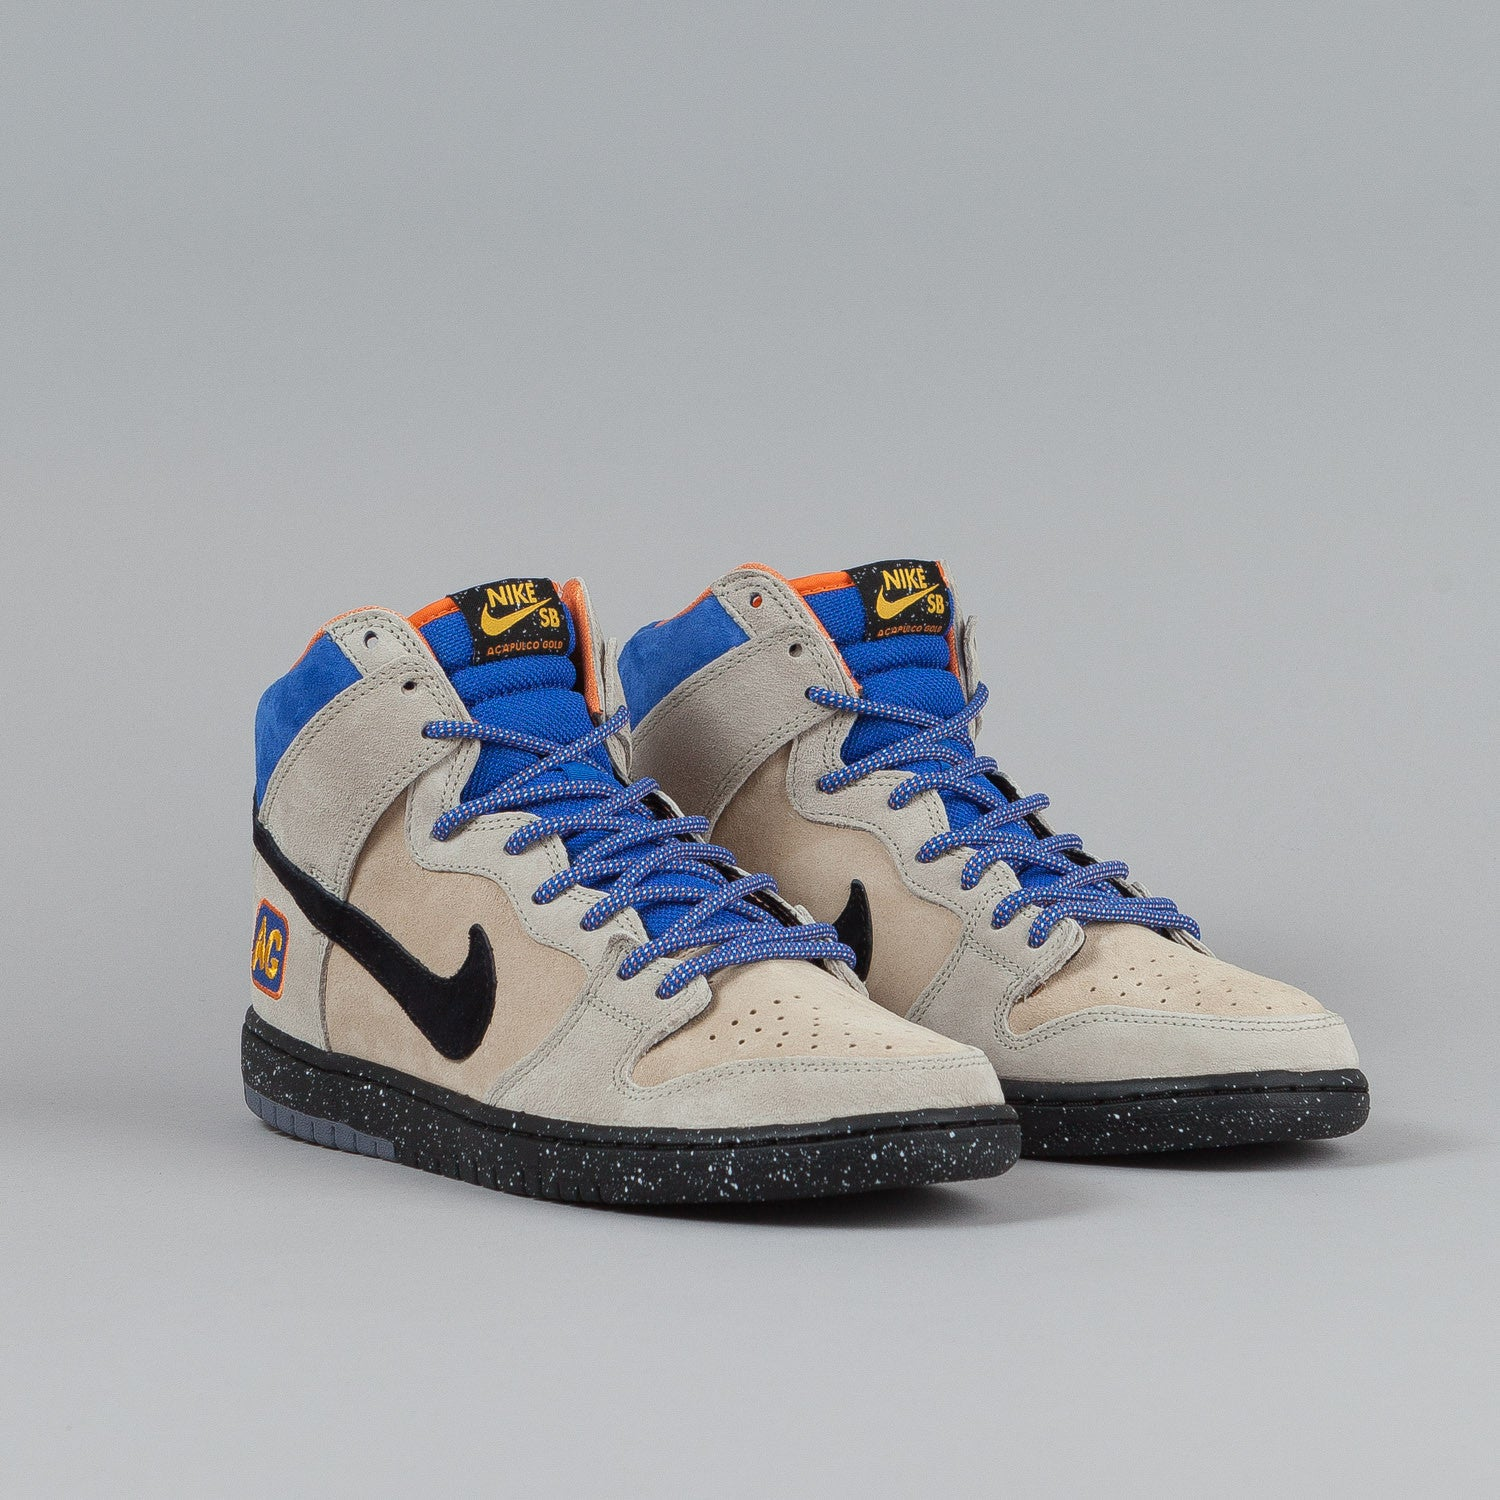 "Nike SB Dunk High Premium Grain / Black - Acapulco Gold ""Mowabb"""